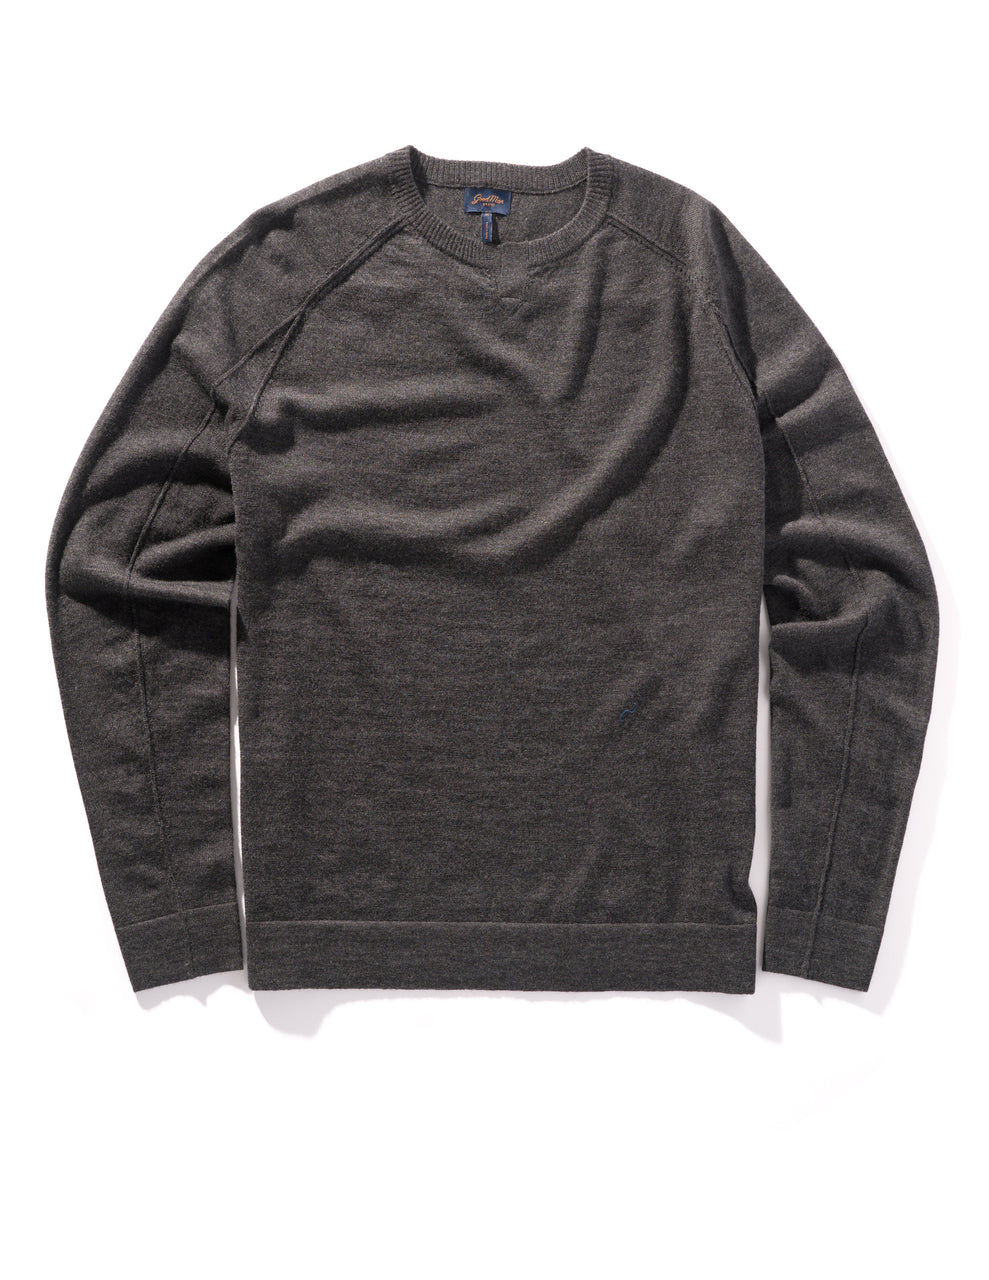 MVP V-Notch Sweater - Charcoal Heather - Good Man Brand - MVP V-Notch Sweater - Charcoal Heather